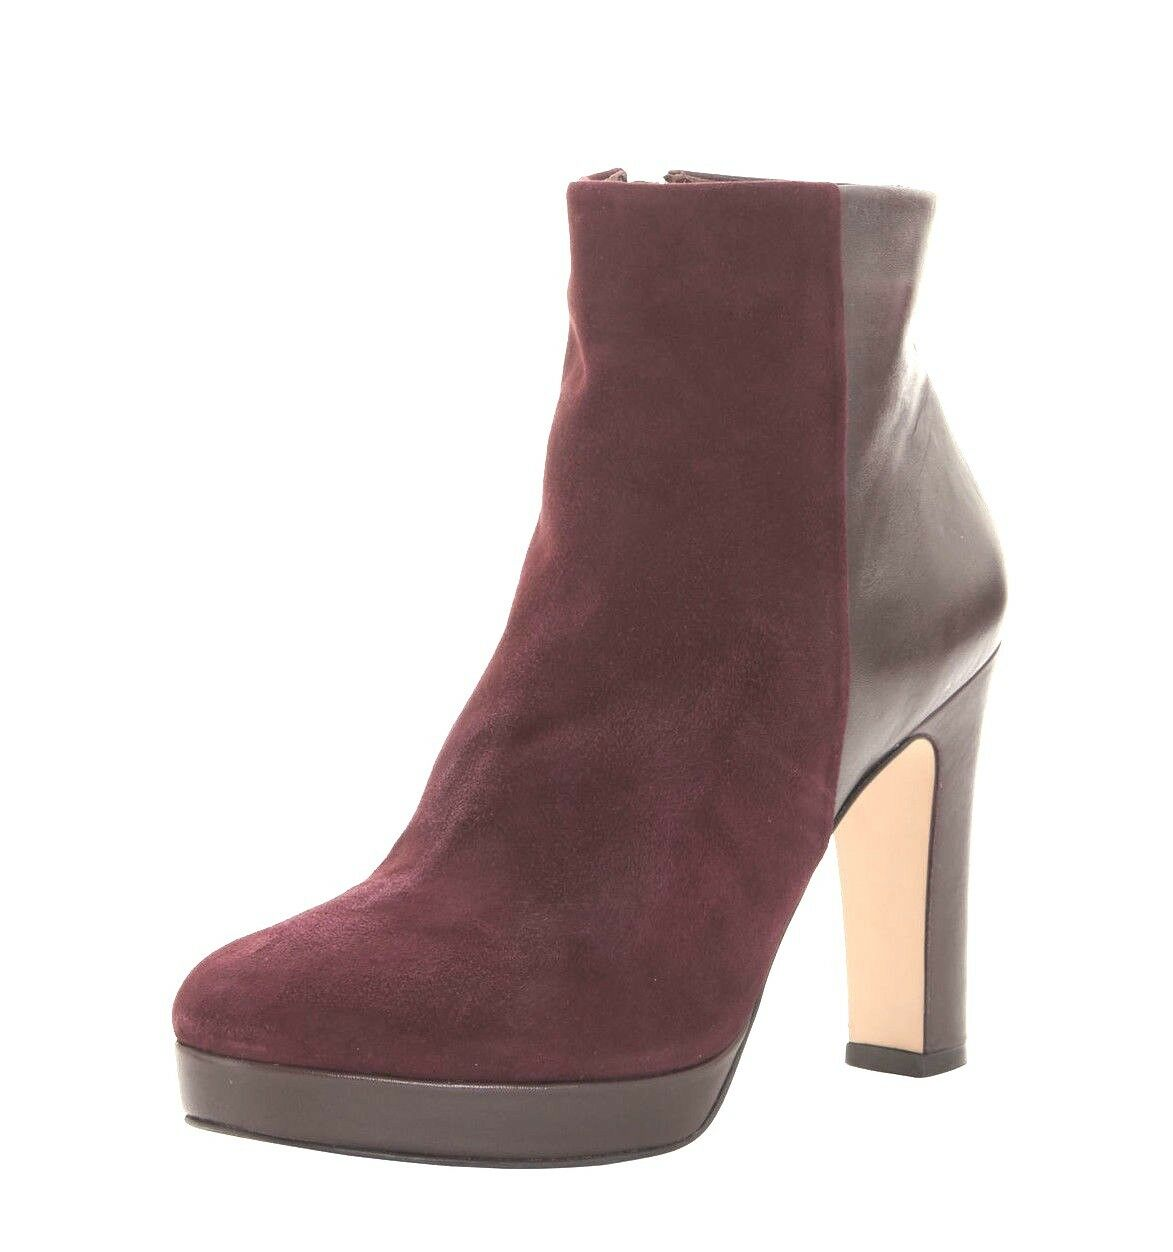 DUNE SIZE 6 7 8 OLYMPE PLUM MAUVE BURGUNDY LEATHER REAL LEATHER BURGUNDY ANKLE Stiefel NEW 6b97bc